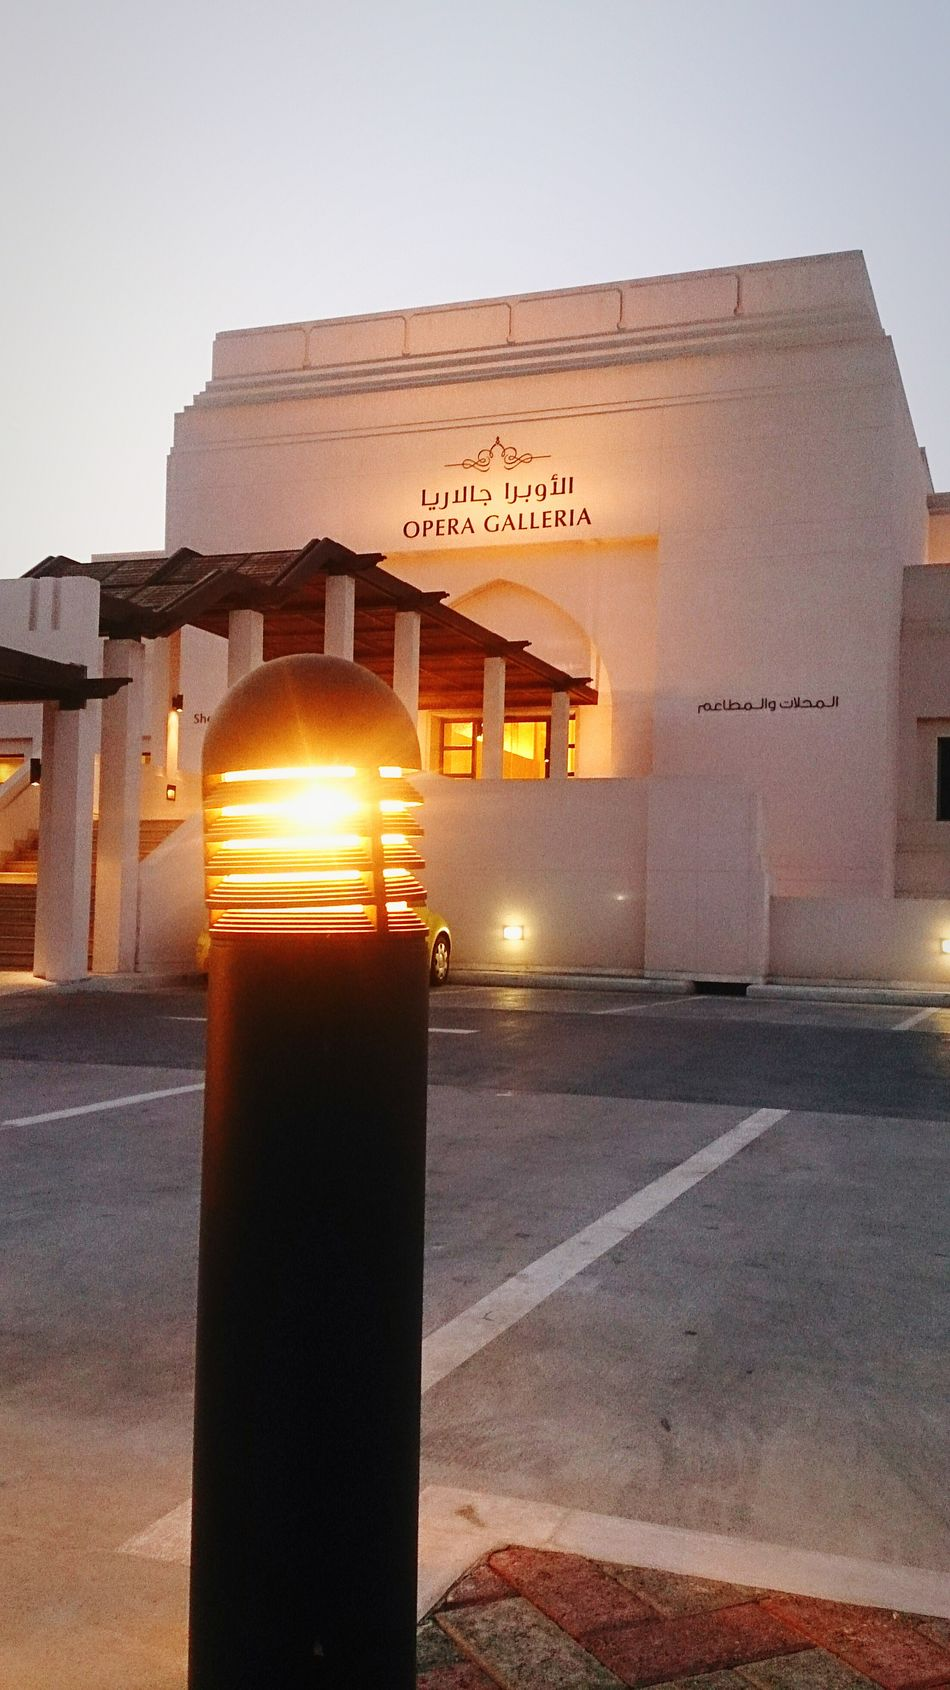 Opera Galleria Operahouse Oman Muscat Middle East Sunset Lights Yellow Architecture Arabian